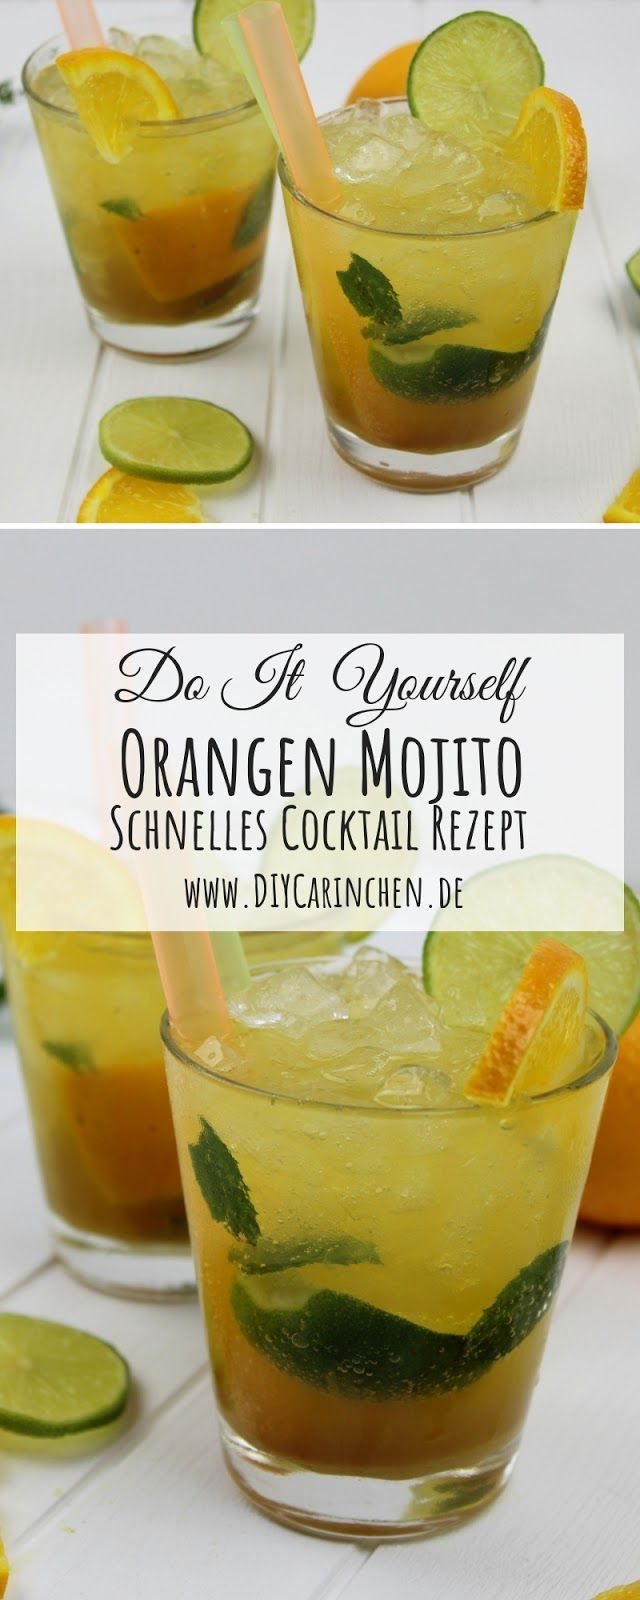 Photo of Simple recipe: Super delicious orange mojito cocktail made quickly